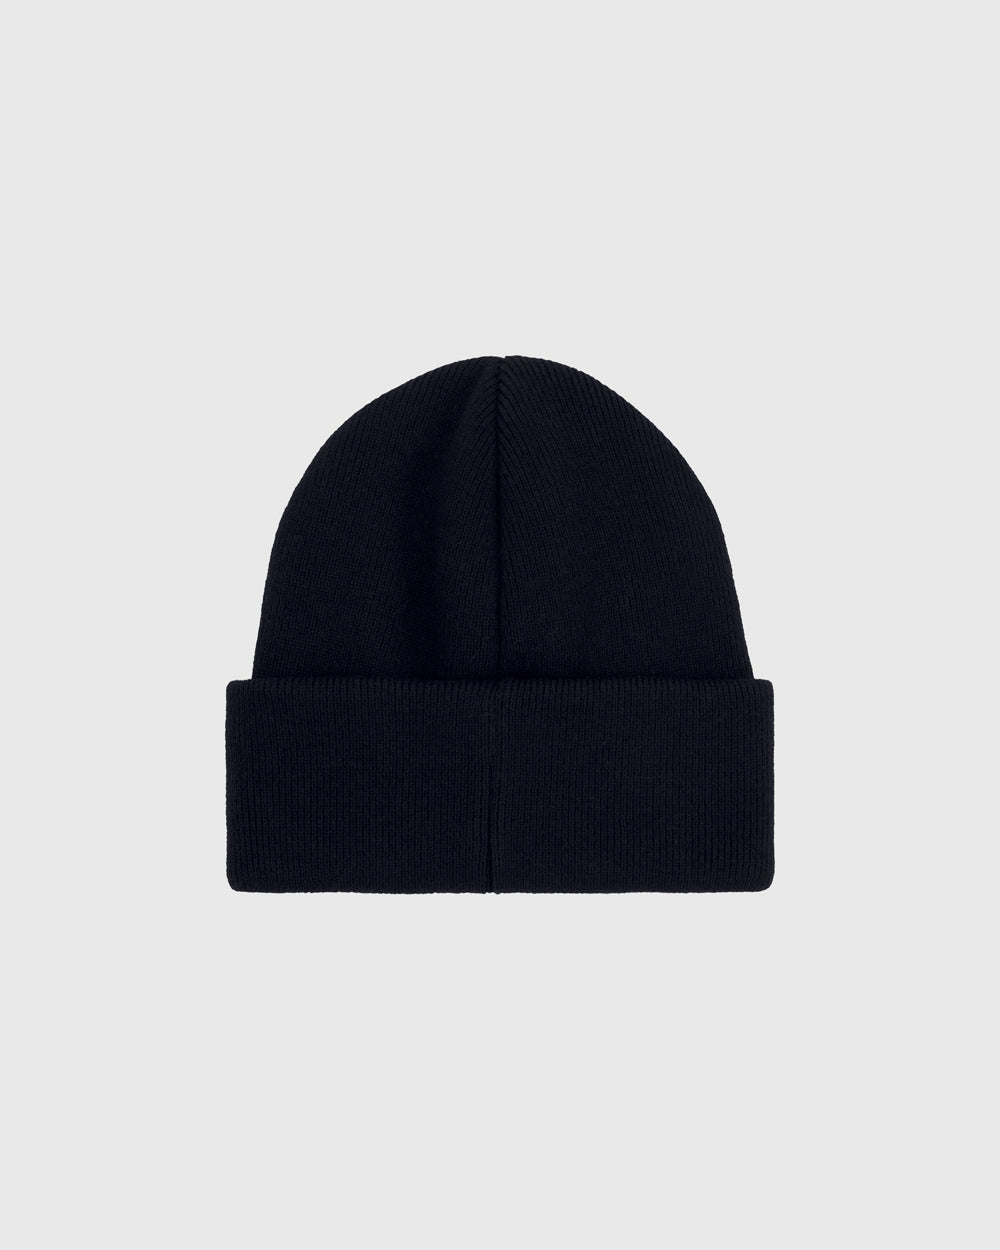 OVO x DSQUARED2 BEANIE - BLACK